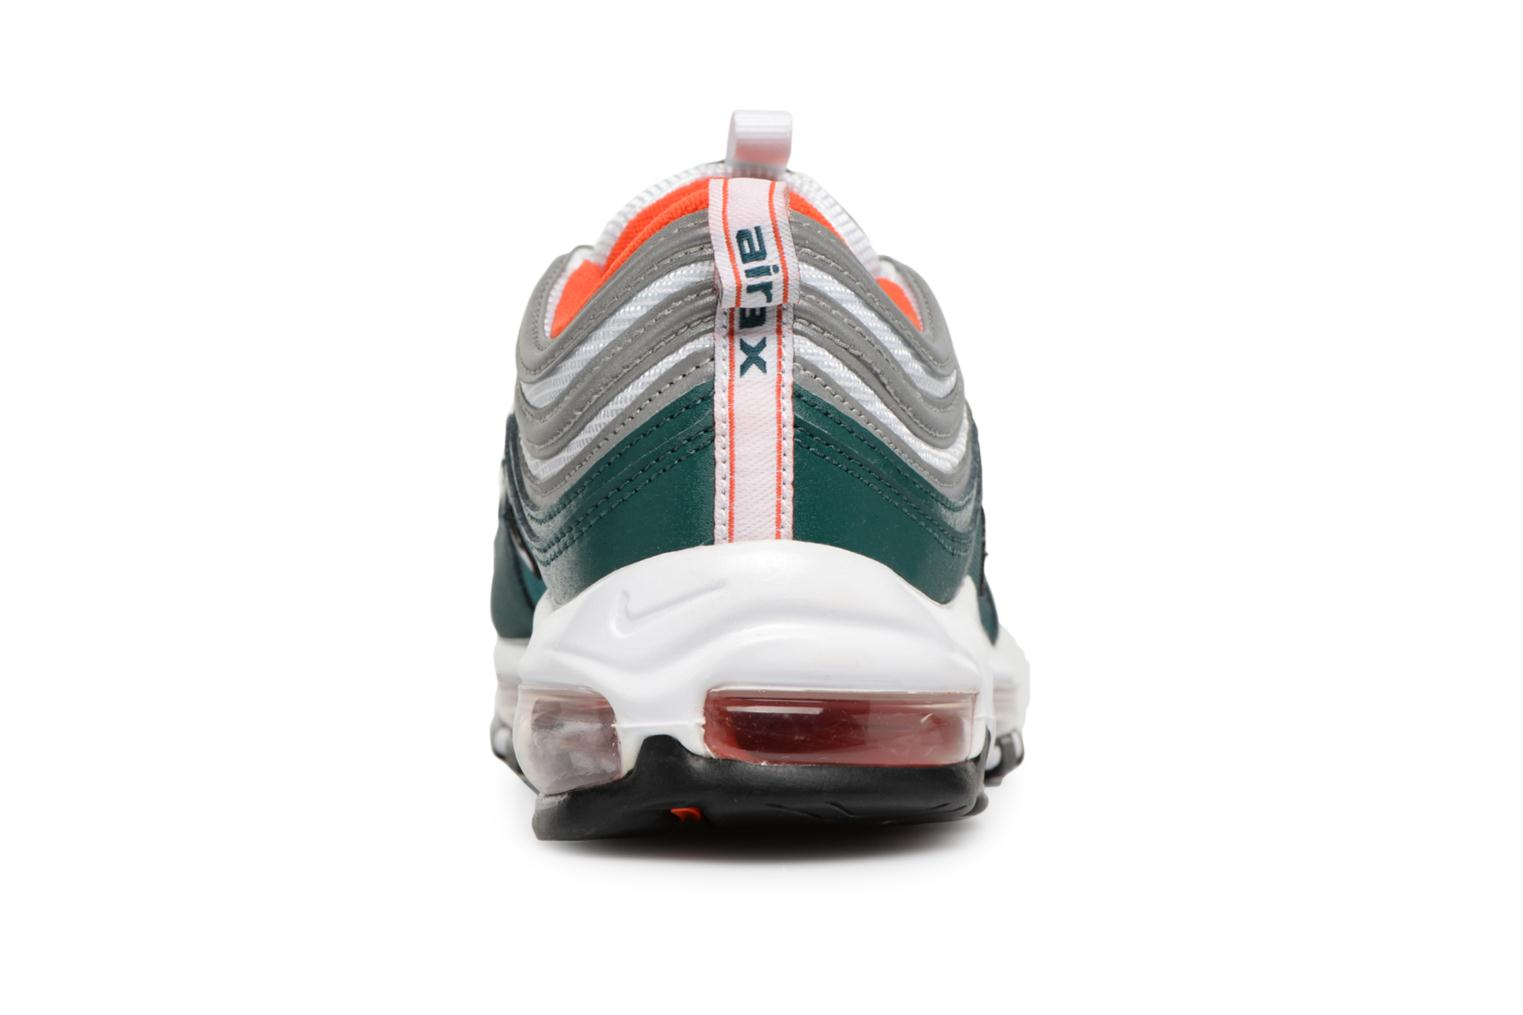 white Nike Air Rainforest black team Orange 97 Max 8vmOwNn0